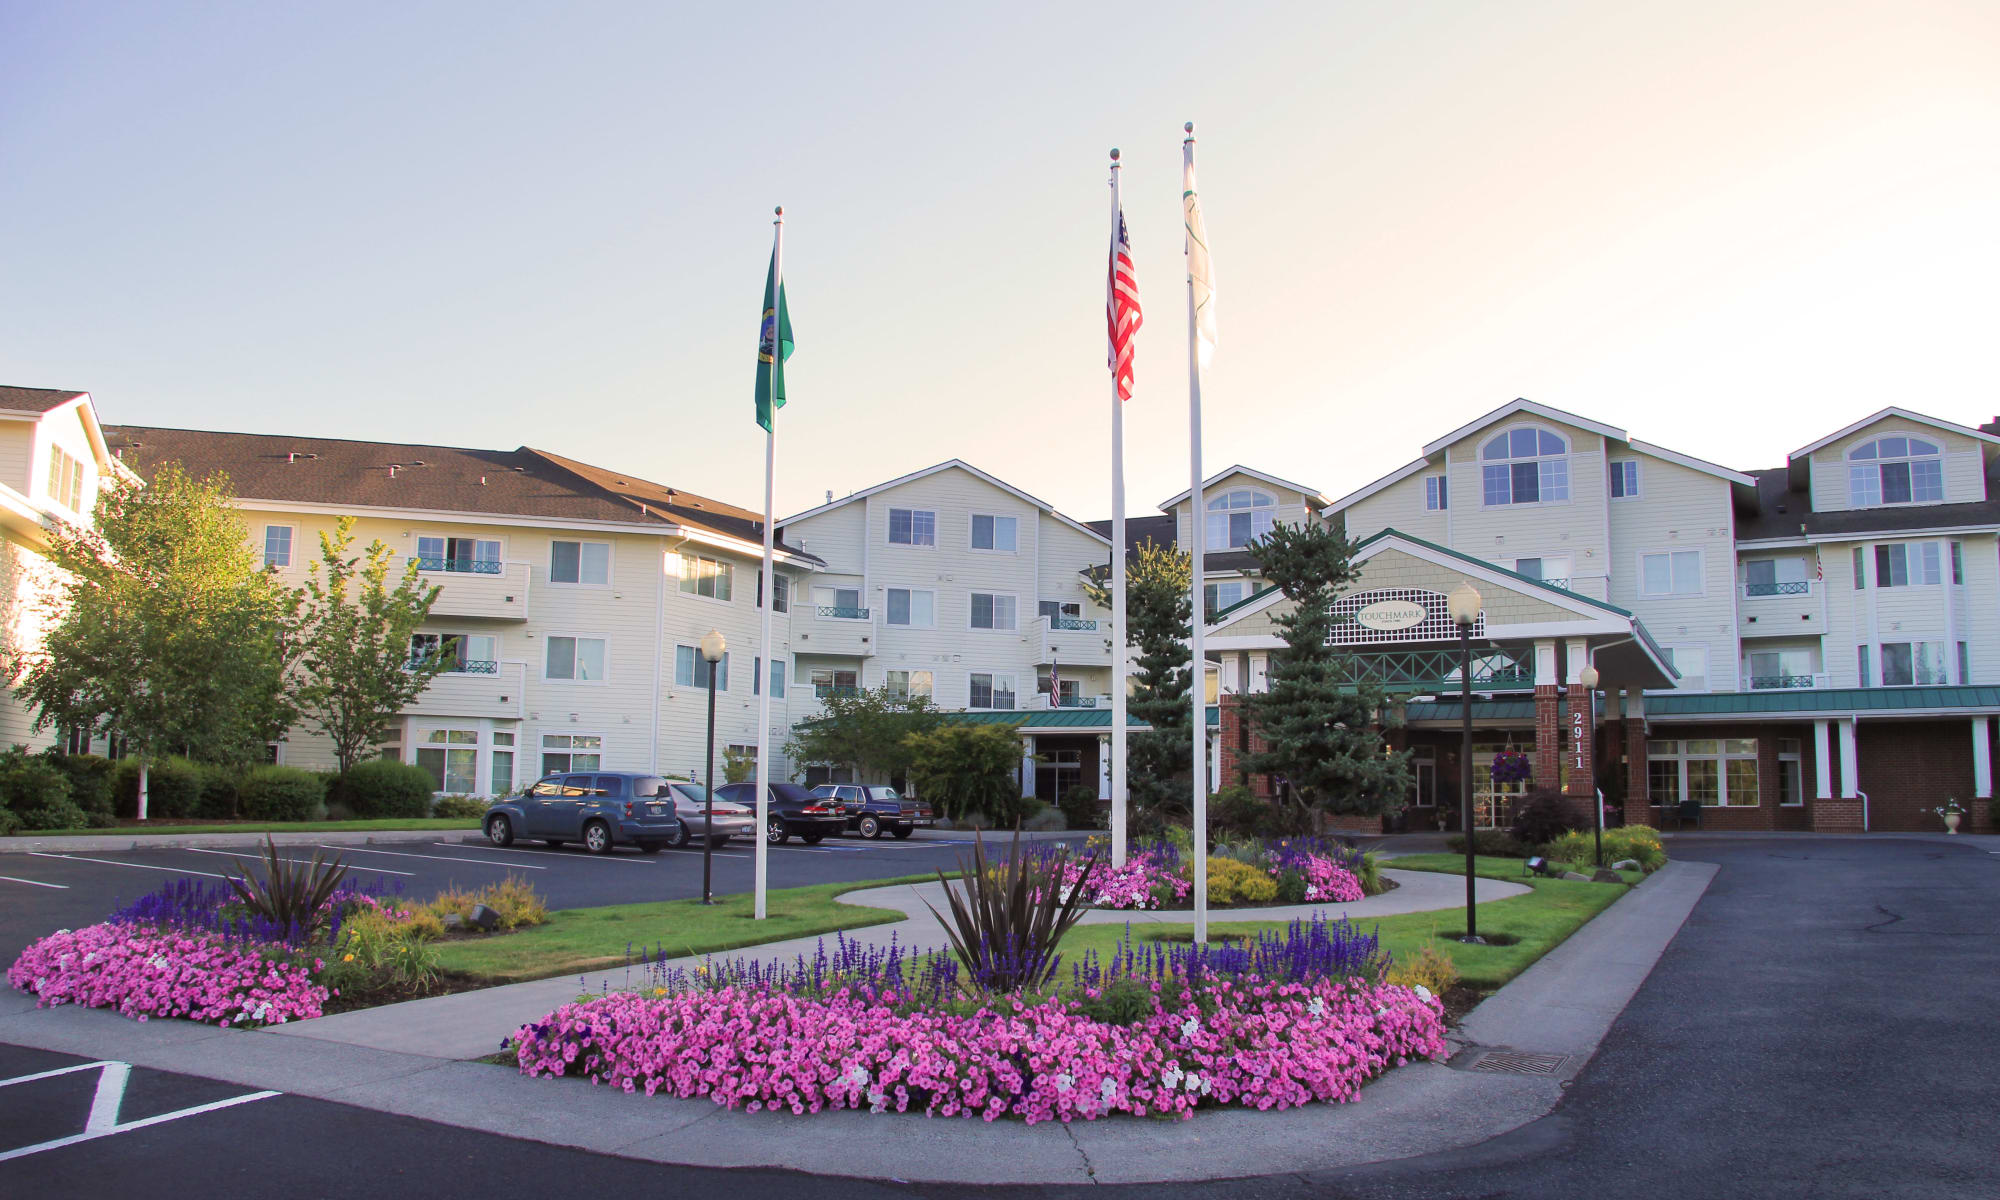 The building exterior and main entrance at Touchmark at Fairway Village in Vancouver, Washington